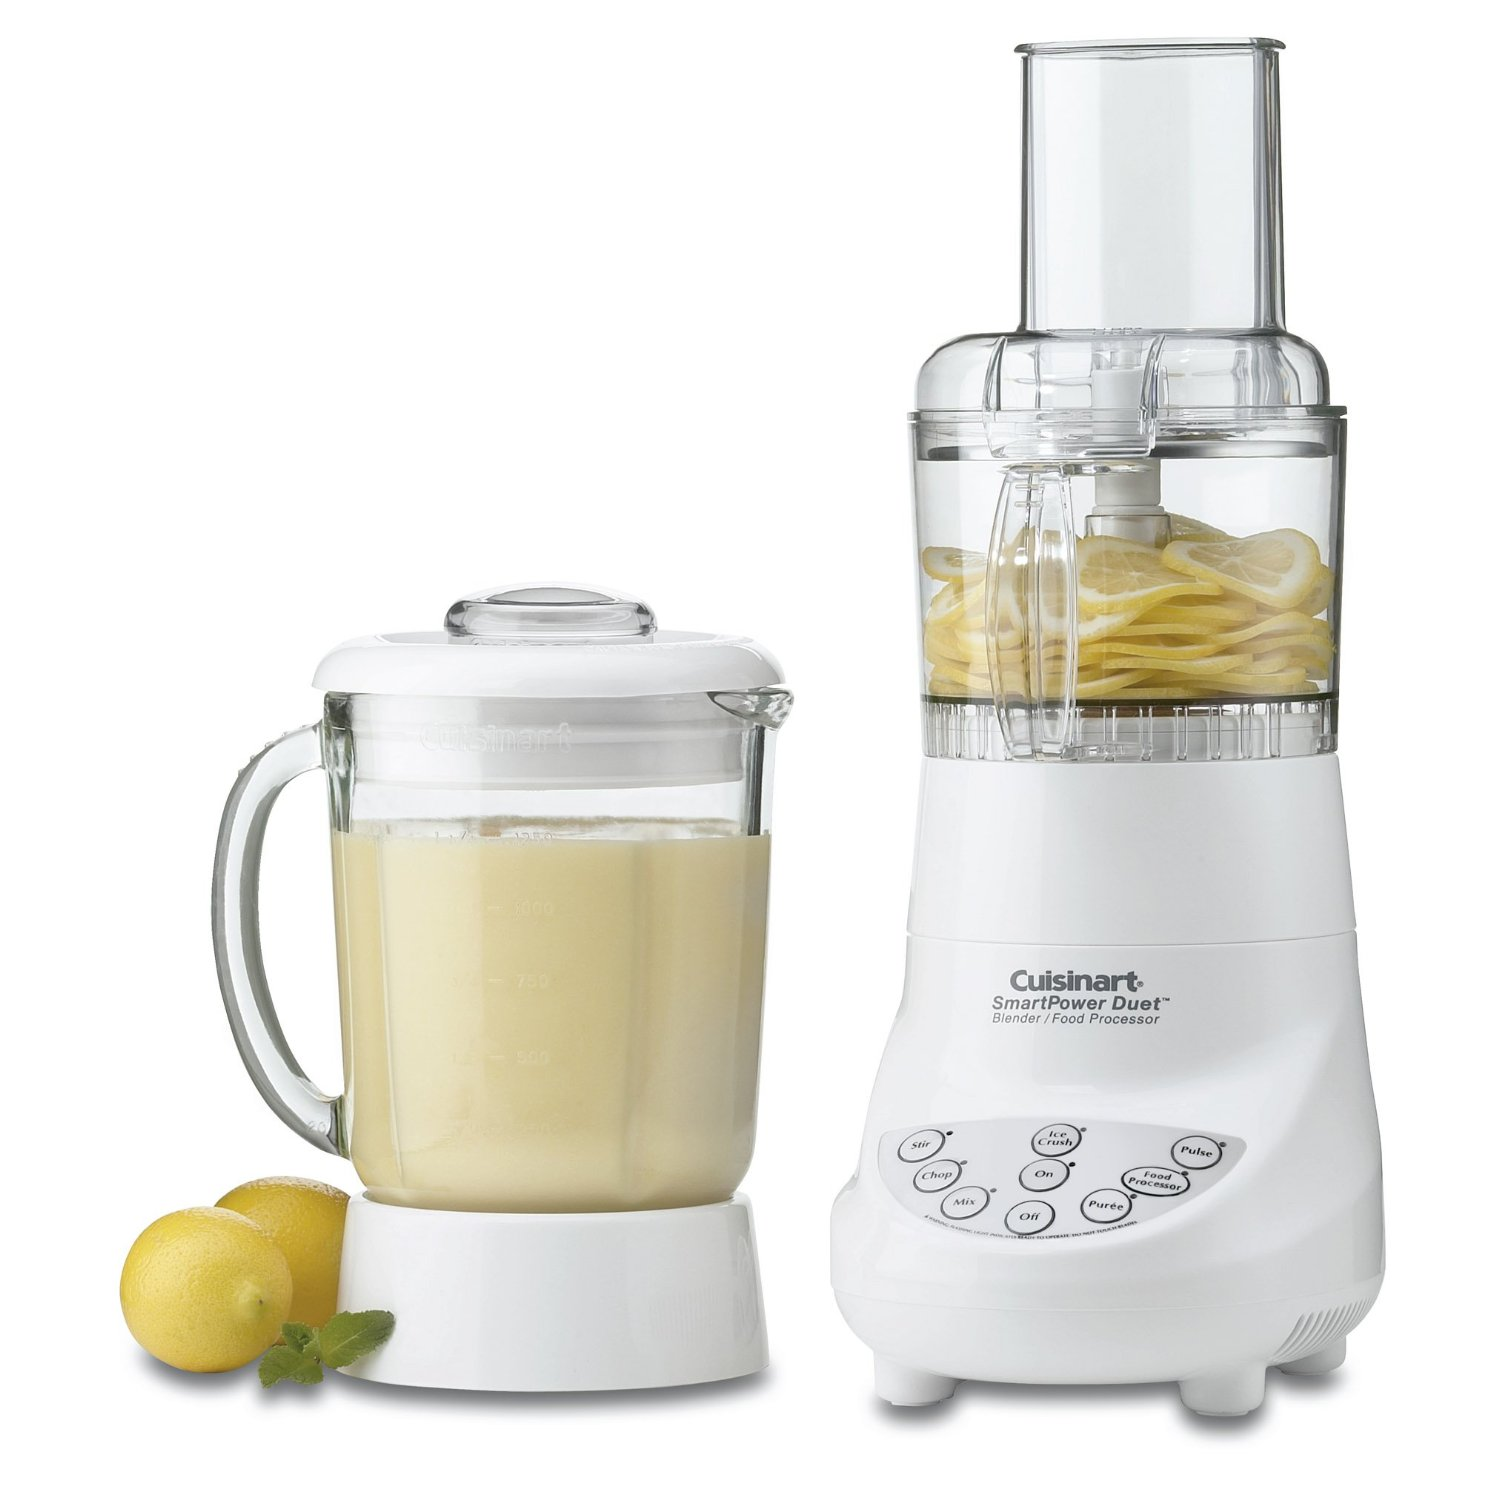 Cuisinart Food Processor Costco Who 39s Afraid Of The Big Pink Slime